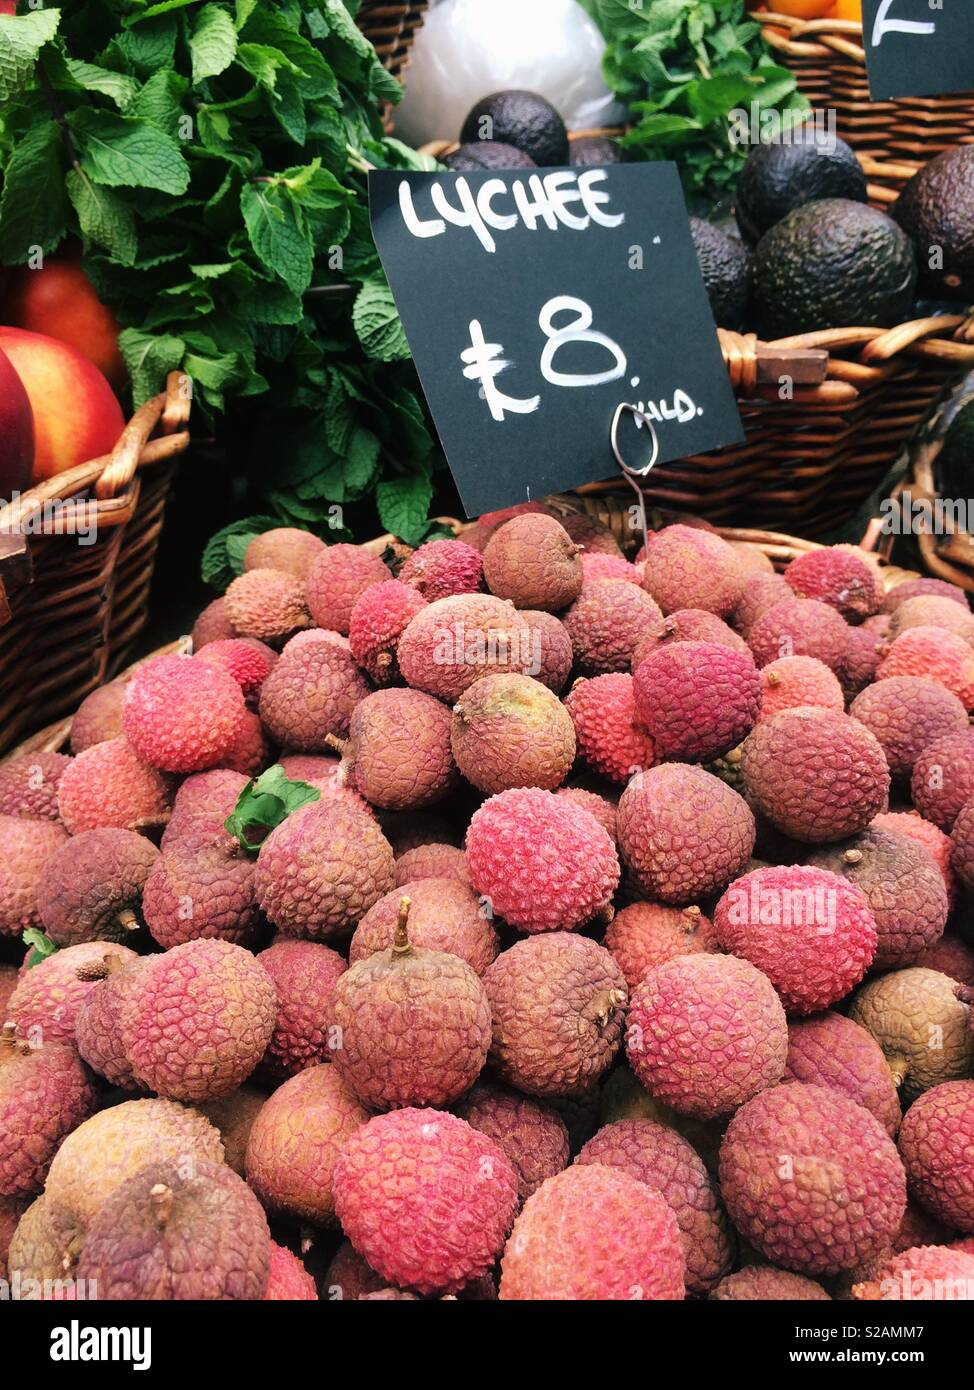 Lychee for sale - Stock Image